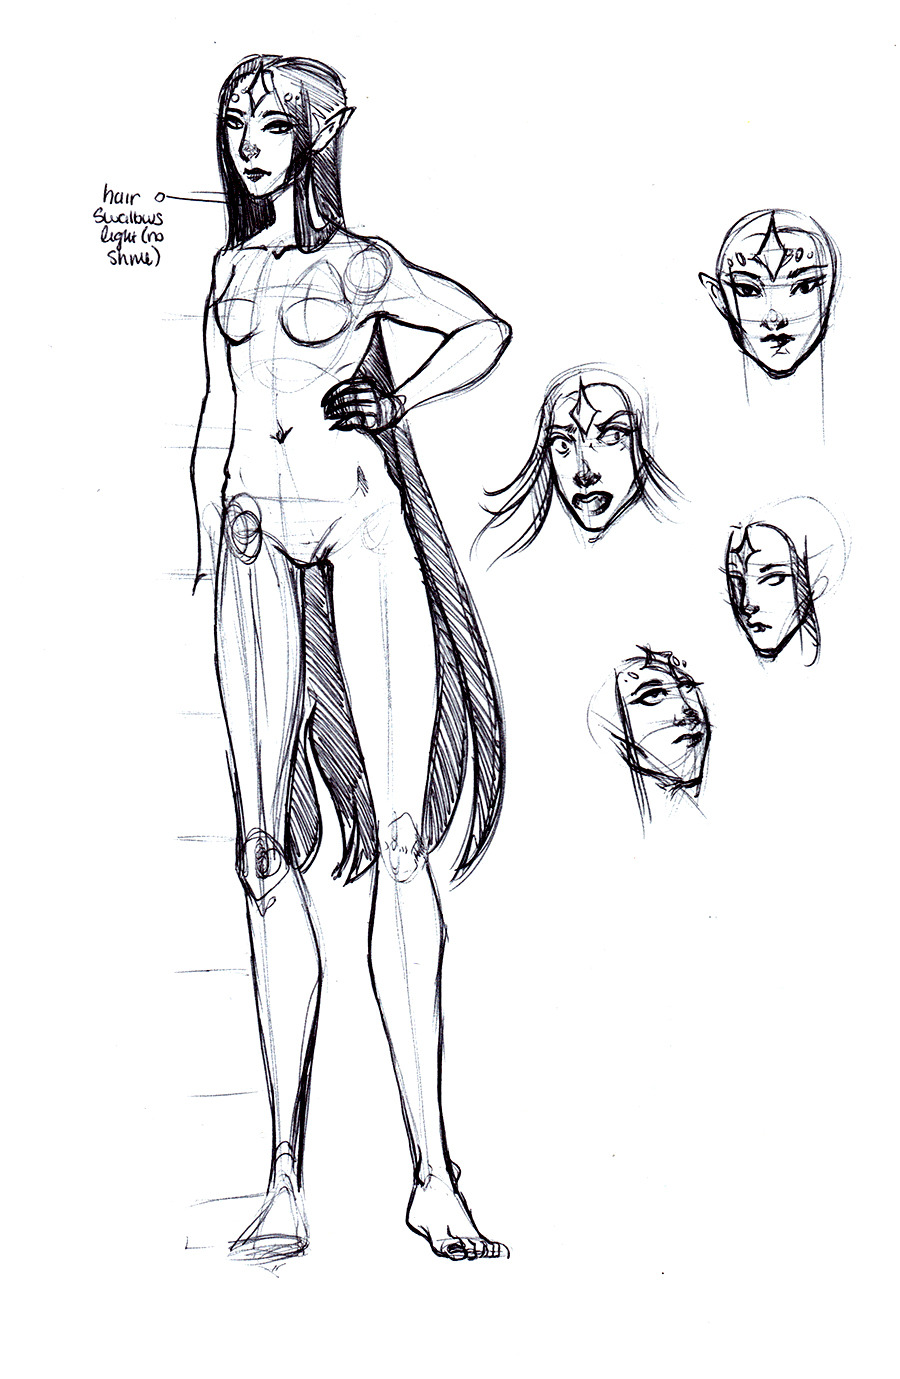 More sketches from when I shoulda been paying attention! Dusk Queen this time.